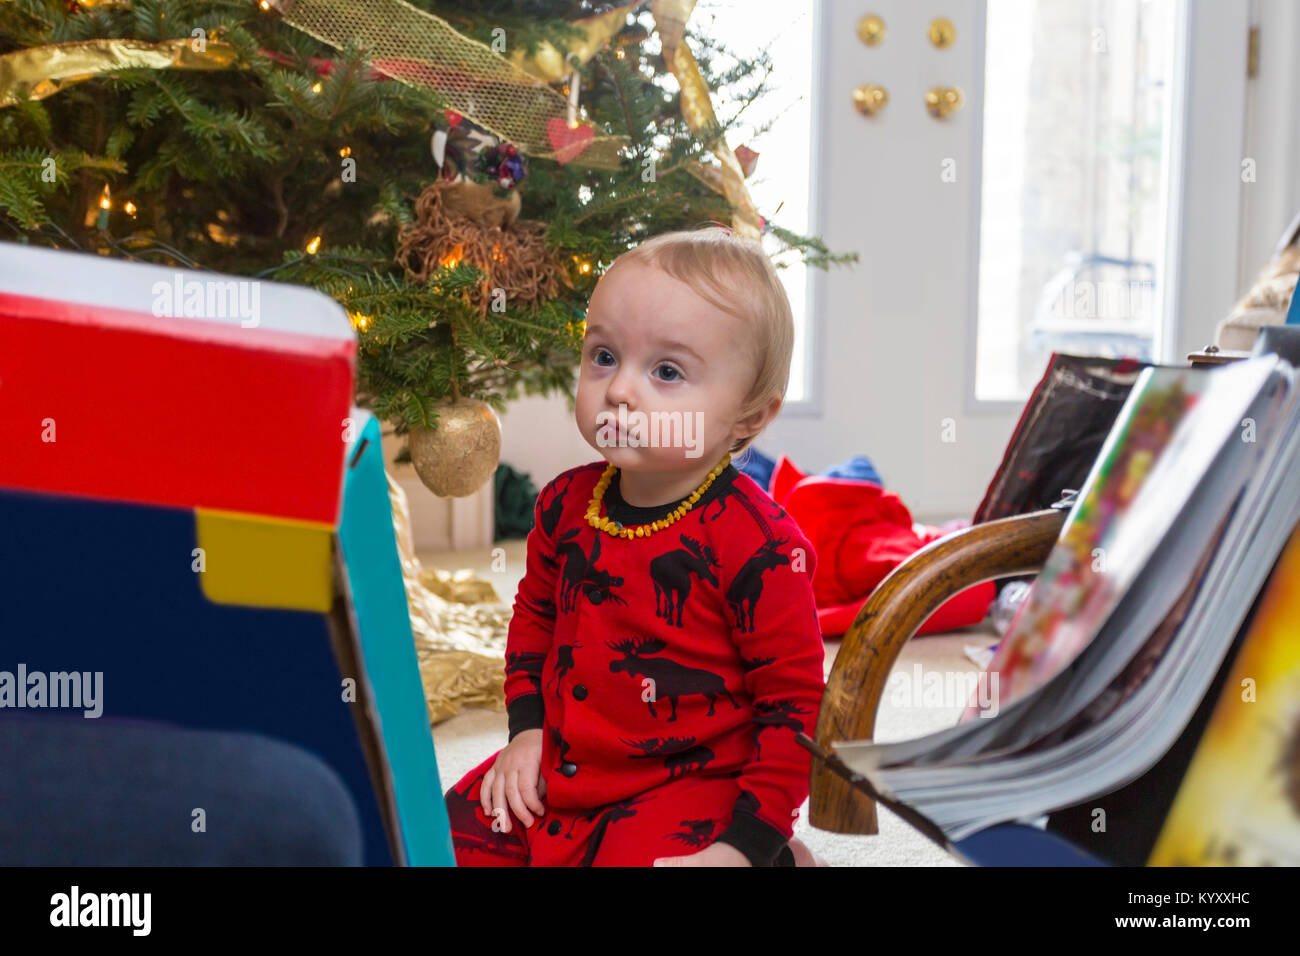 sad 1 year old child in red pyjamas sitting on floor looking up beside Christmas tree - Stock Image